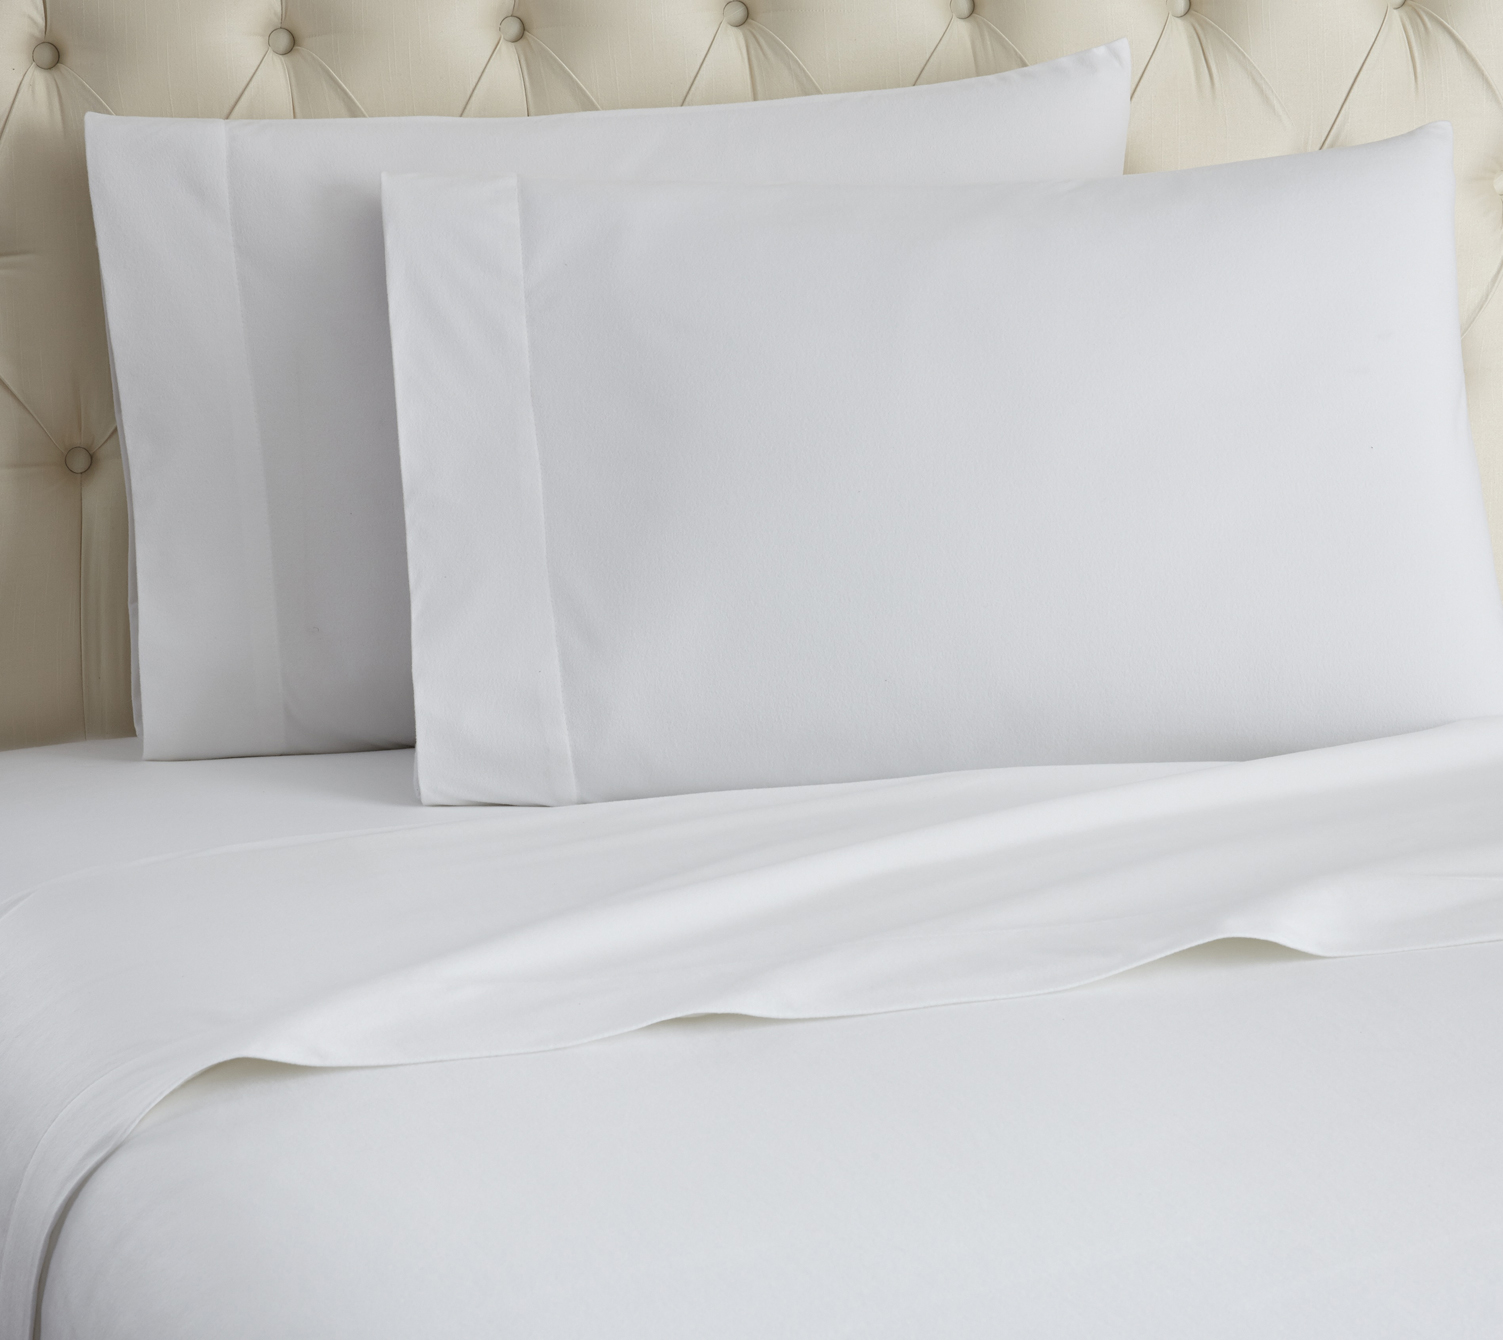 Shave Cotton Bed Sheets